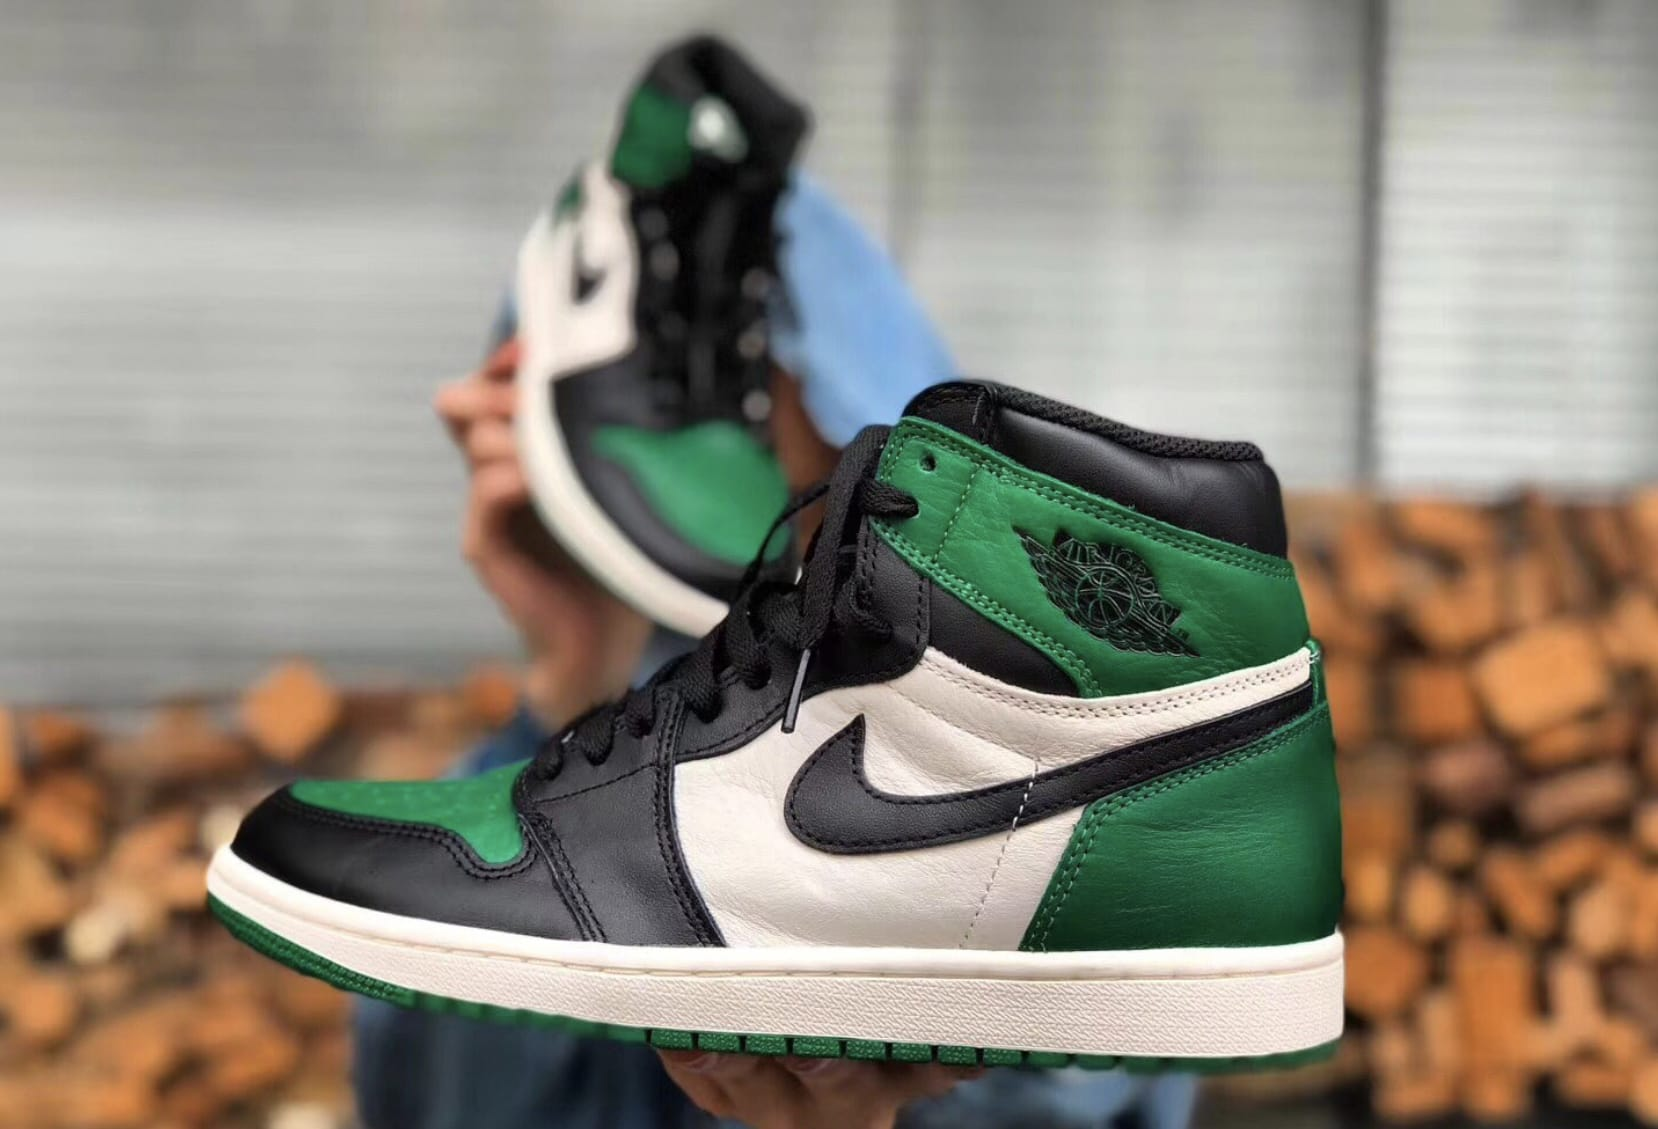 Air Jordan 1 High NRG 'Pine Green/Sail-Black' 555088-032 1